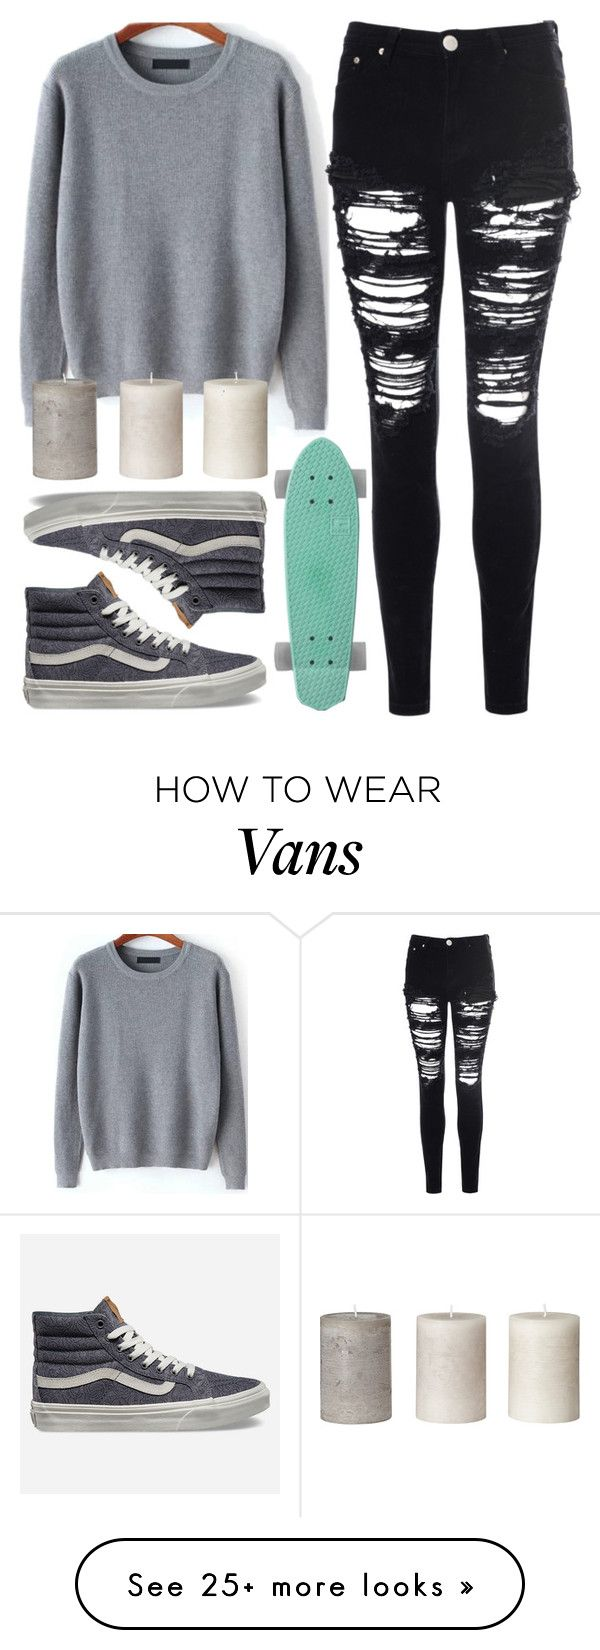 """""""!"""" by king-alysa on Polyvore featuring Glamorous and Vans"""